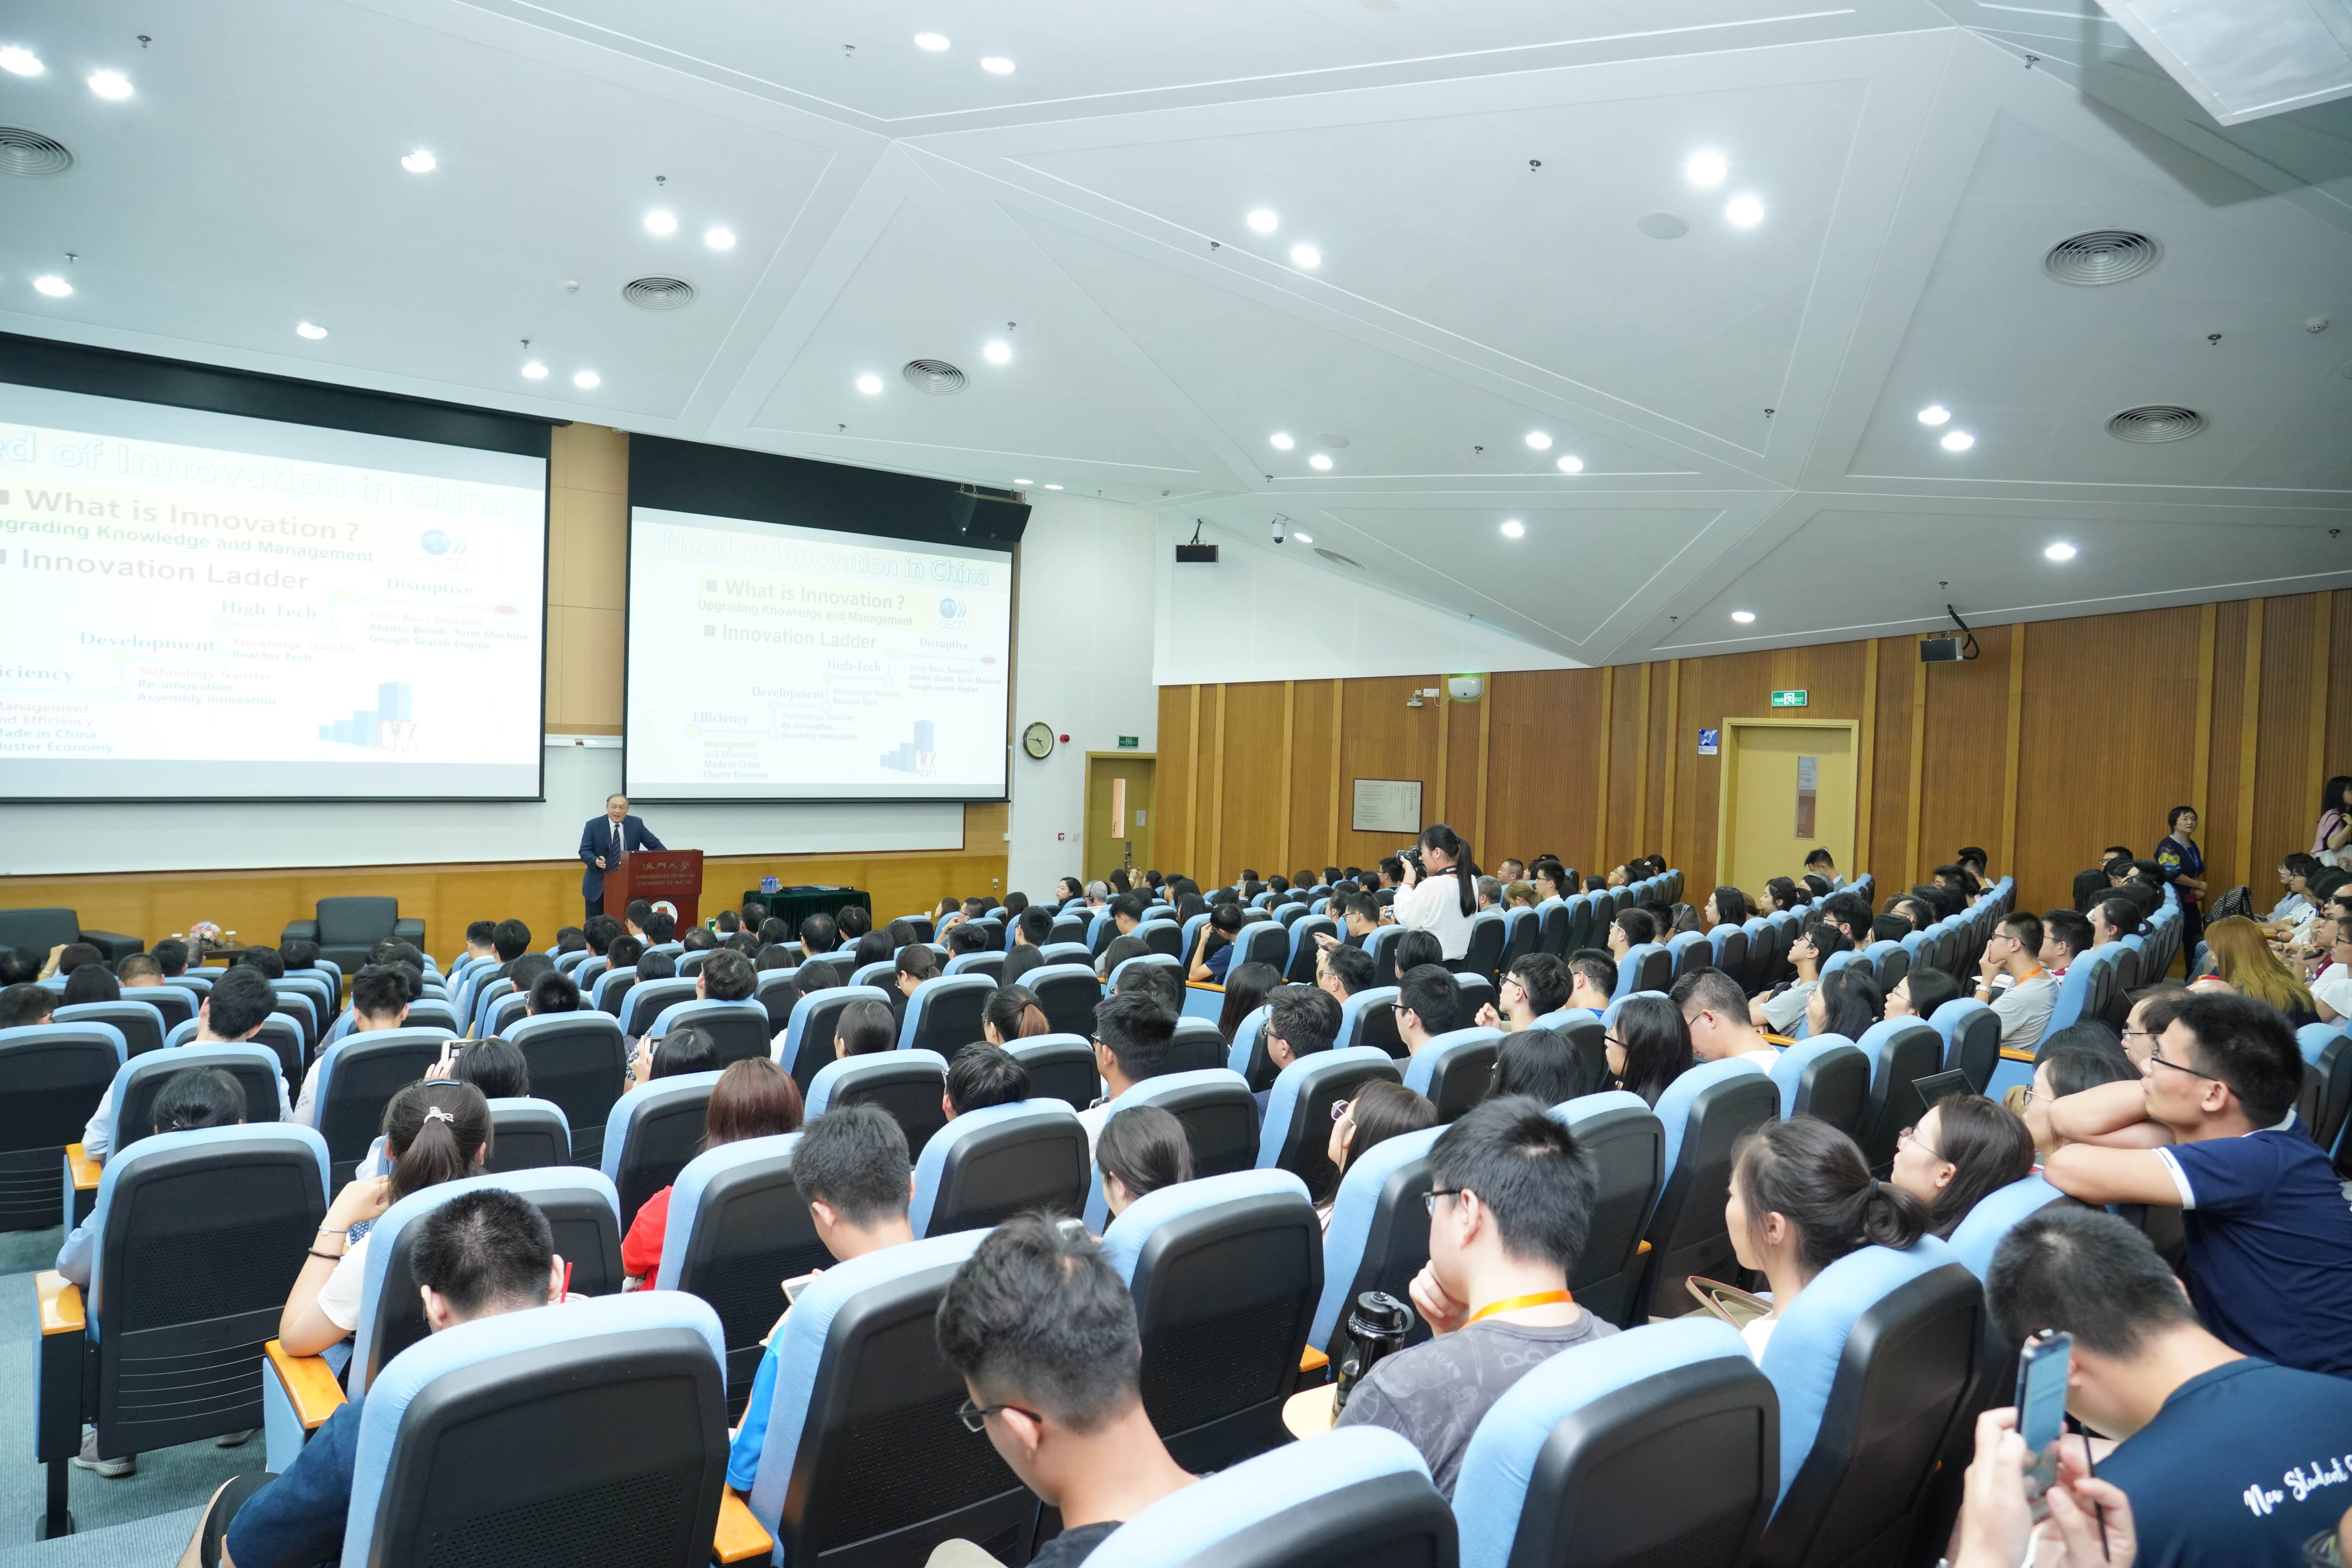 The talk attracts many UM faculty members, students, secondary school teachers and students, as well as members of the general public